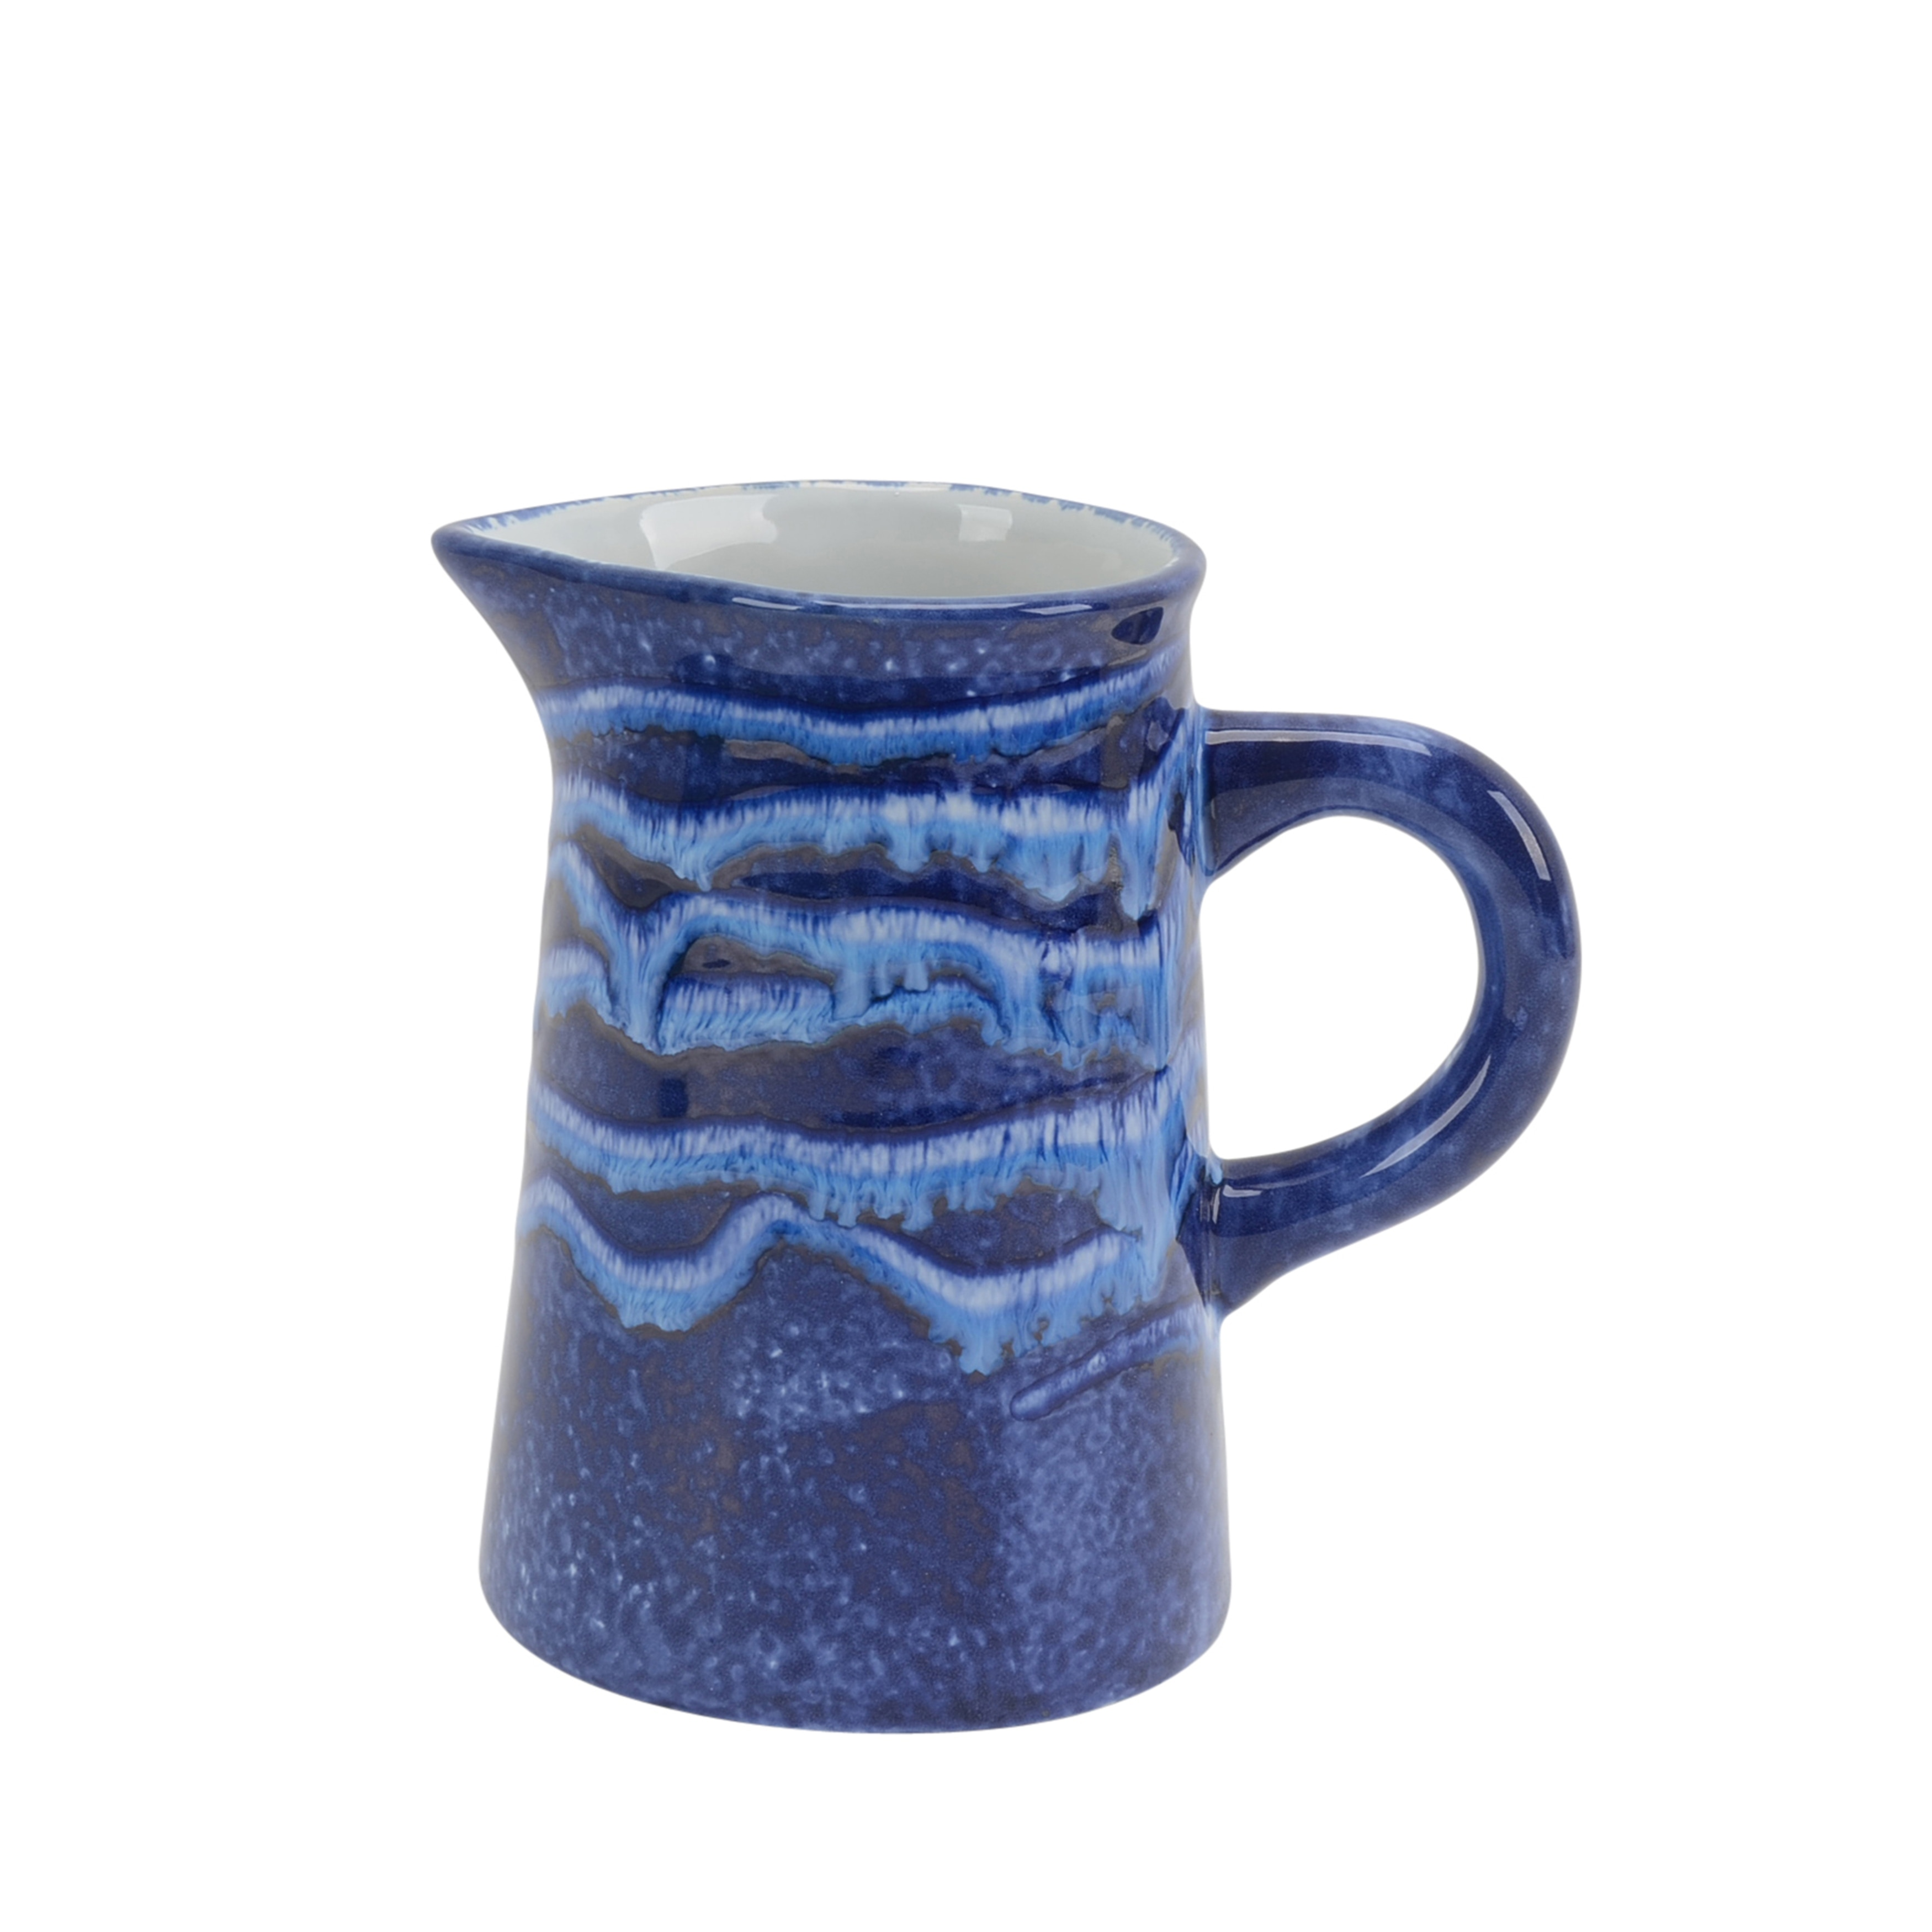 Traditional Ceramic Pitcher with Handle, Blue